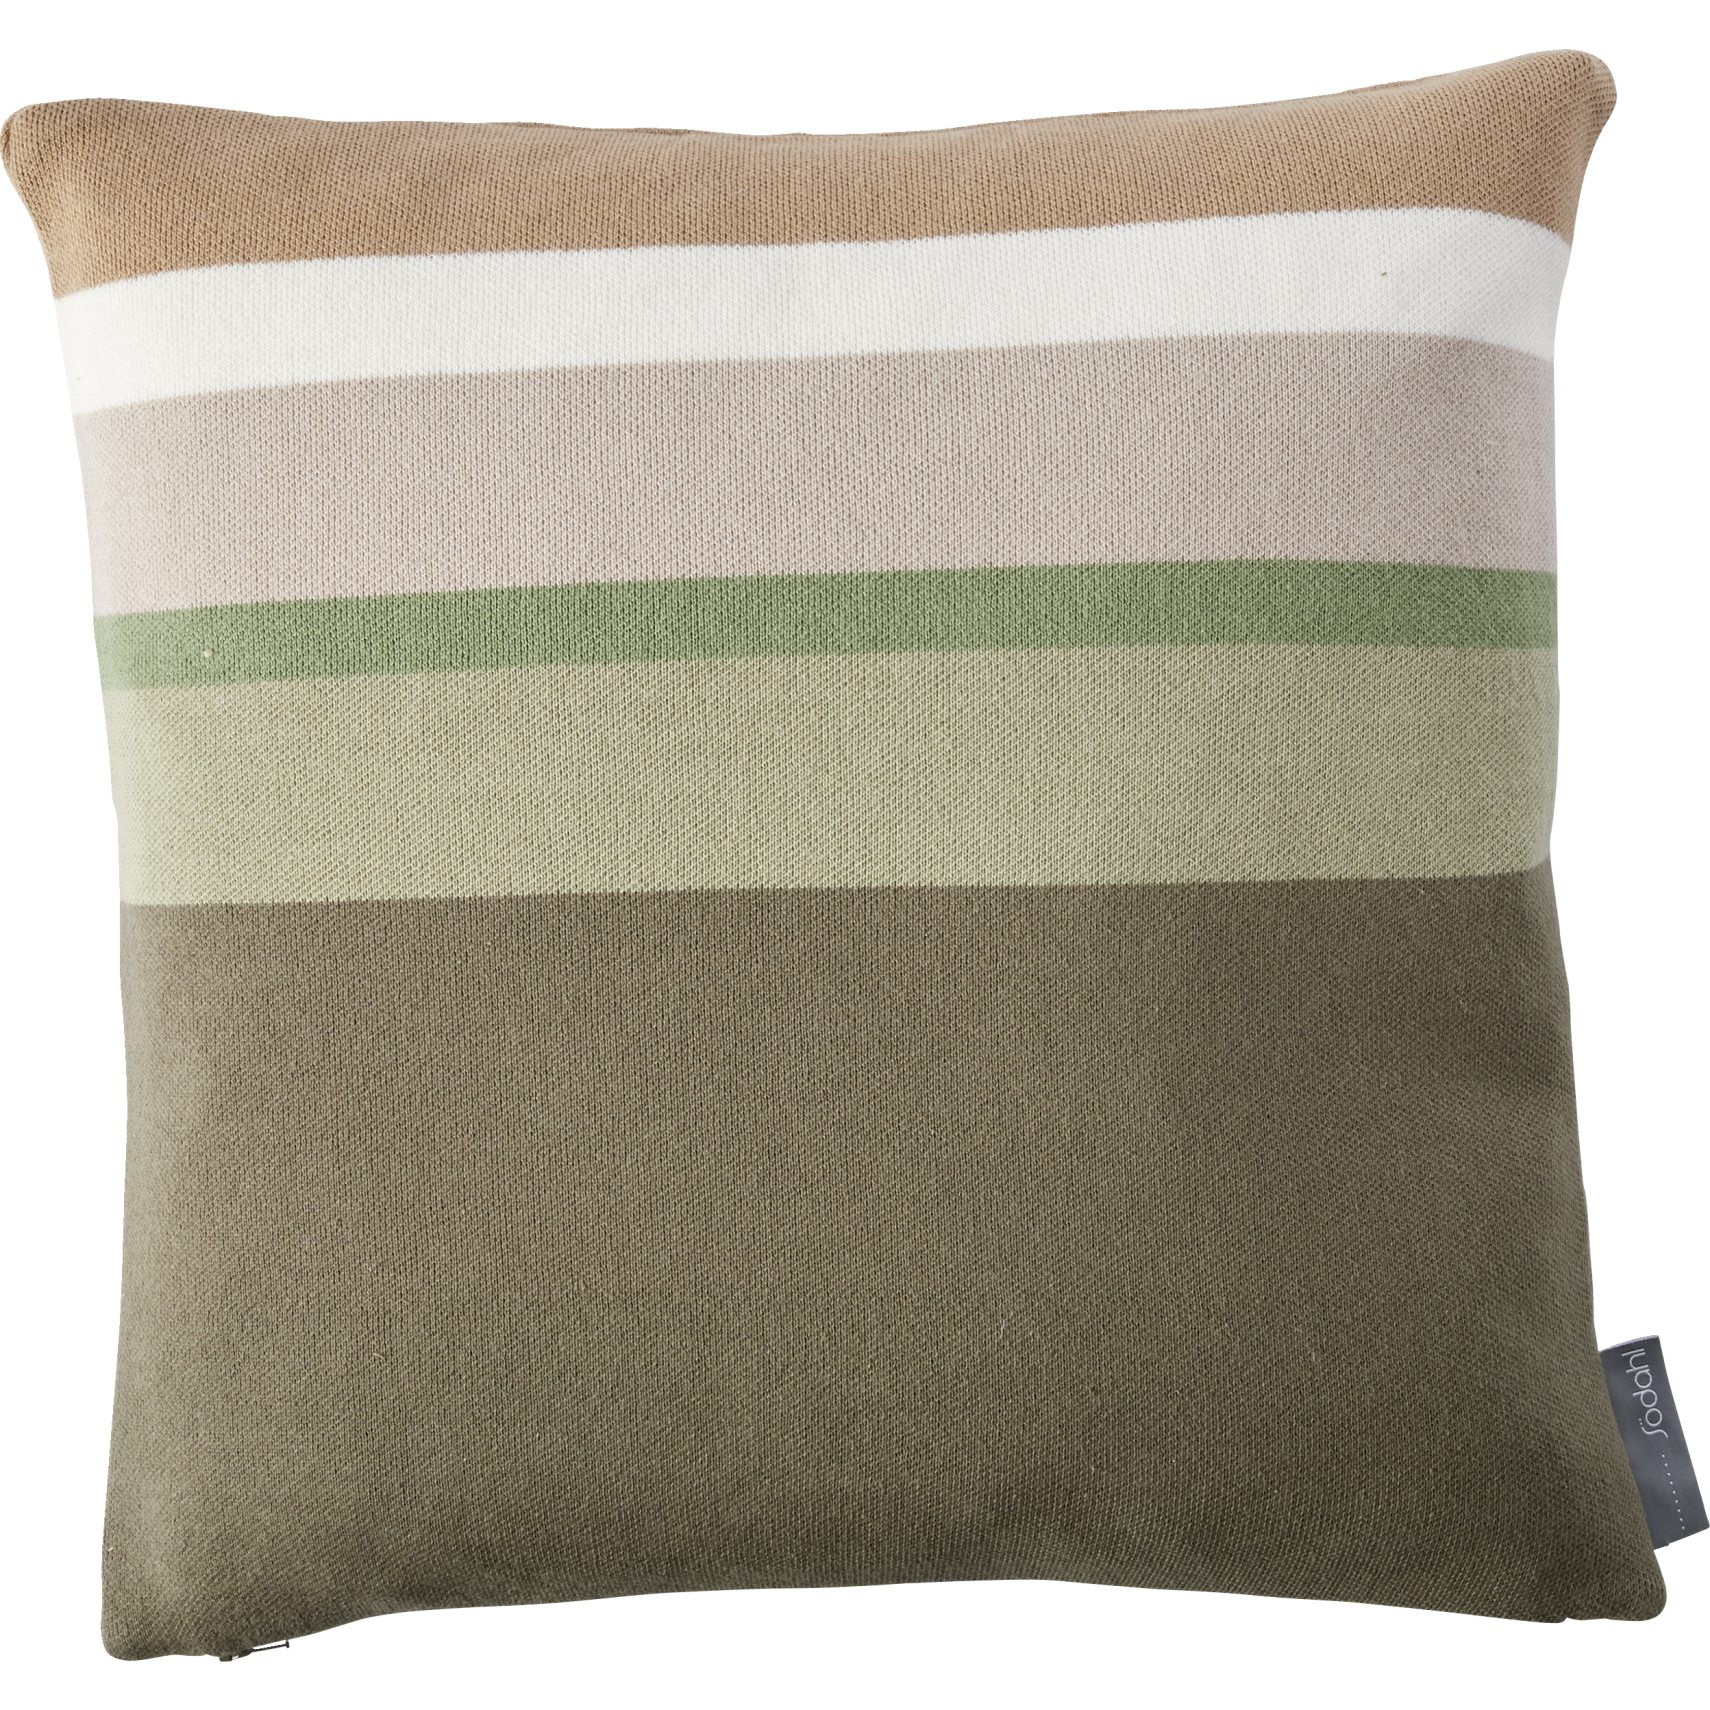 Södahl Harmony Pude - Deep lichen green bomuld og taos taupe/offwhite/swamp striber